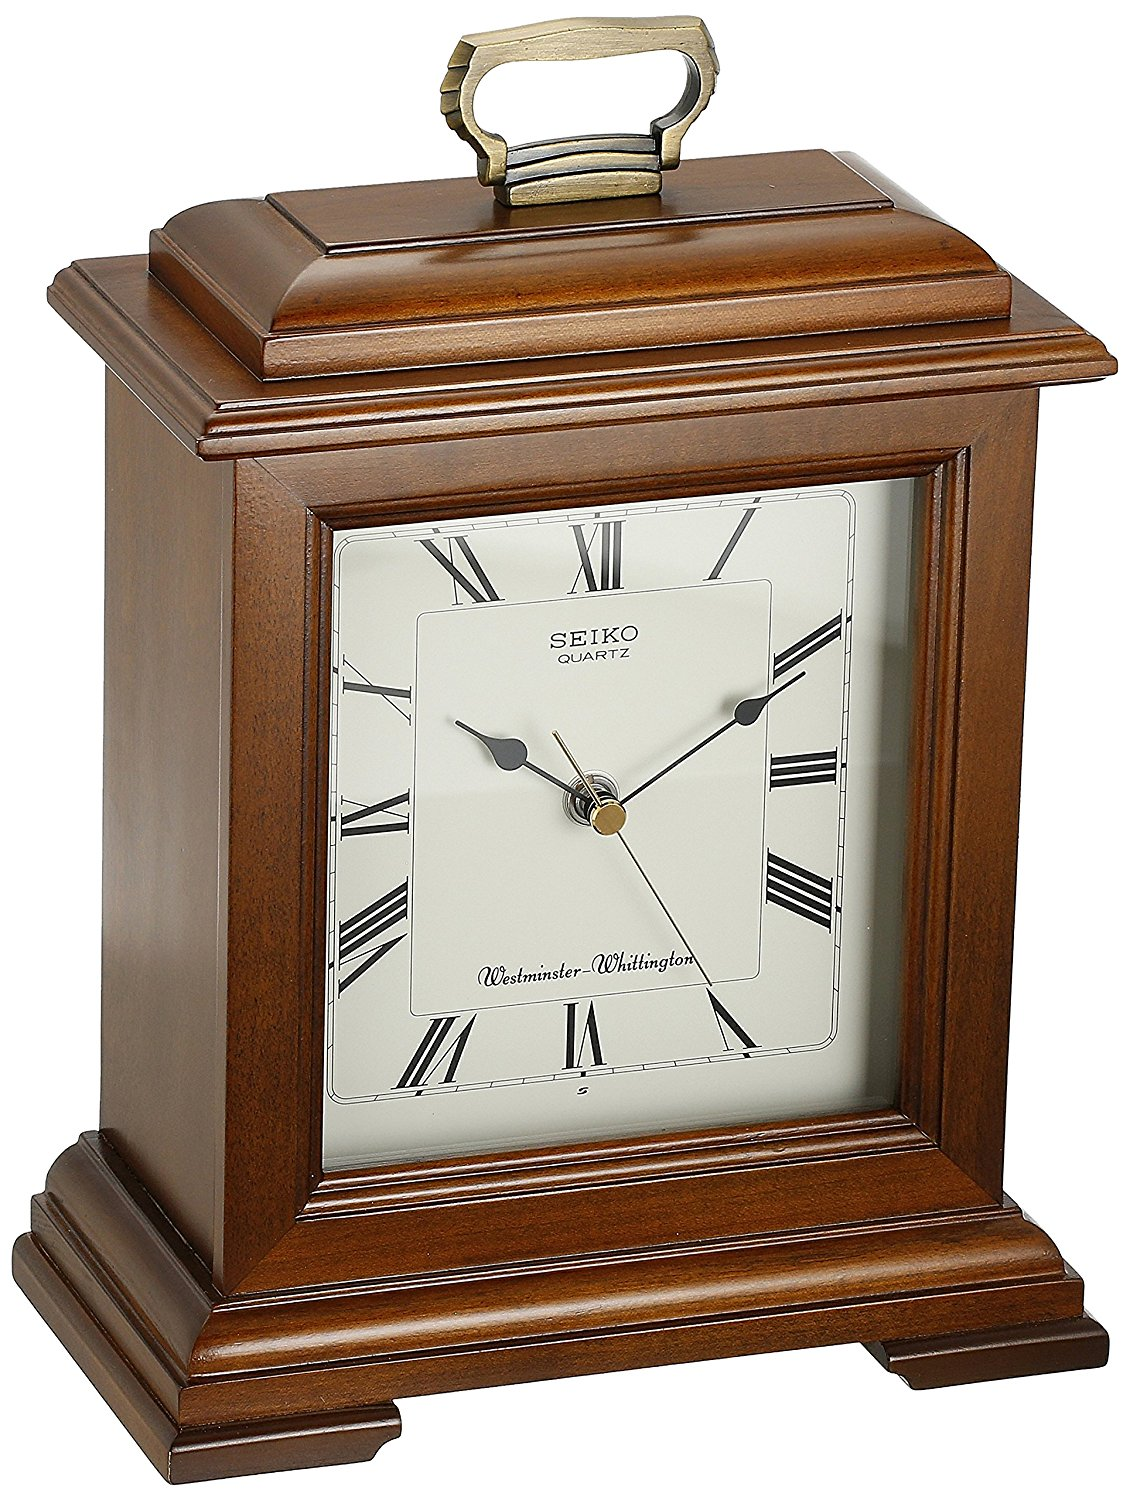 Seiko Mantel Chime Carriage Clock Cherry Finish Solid Wood Case